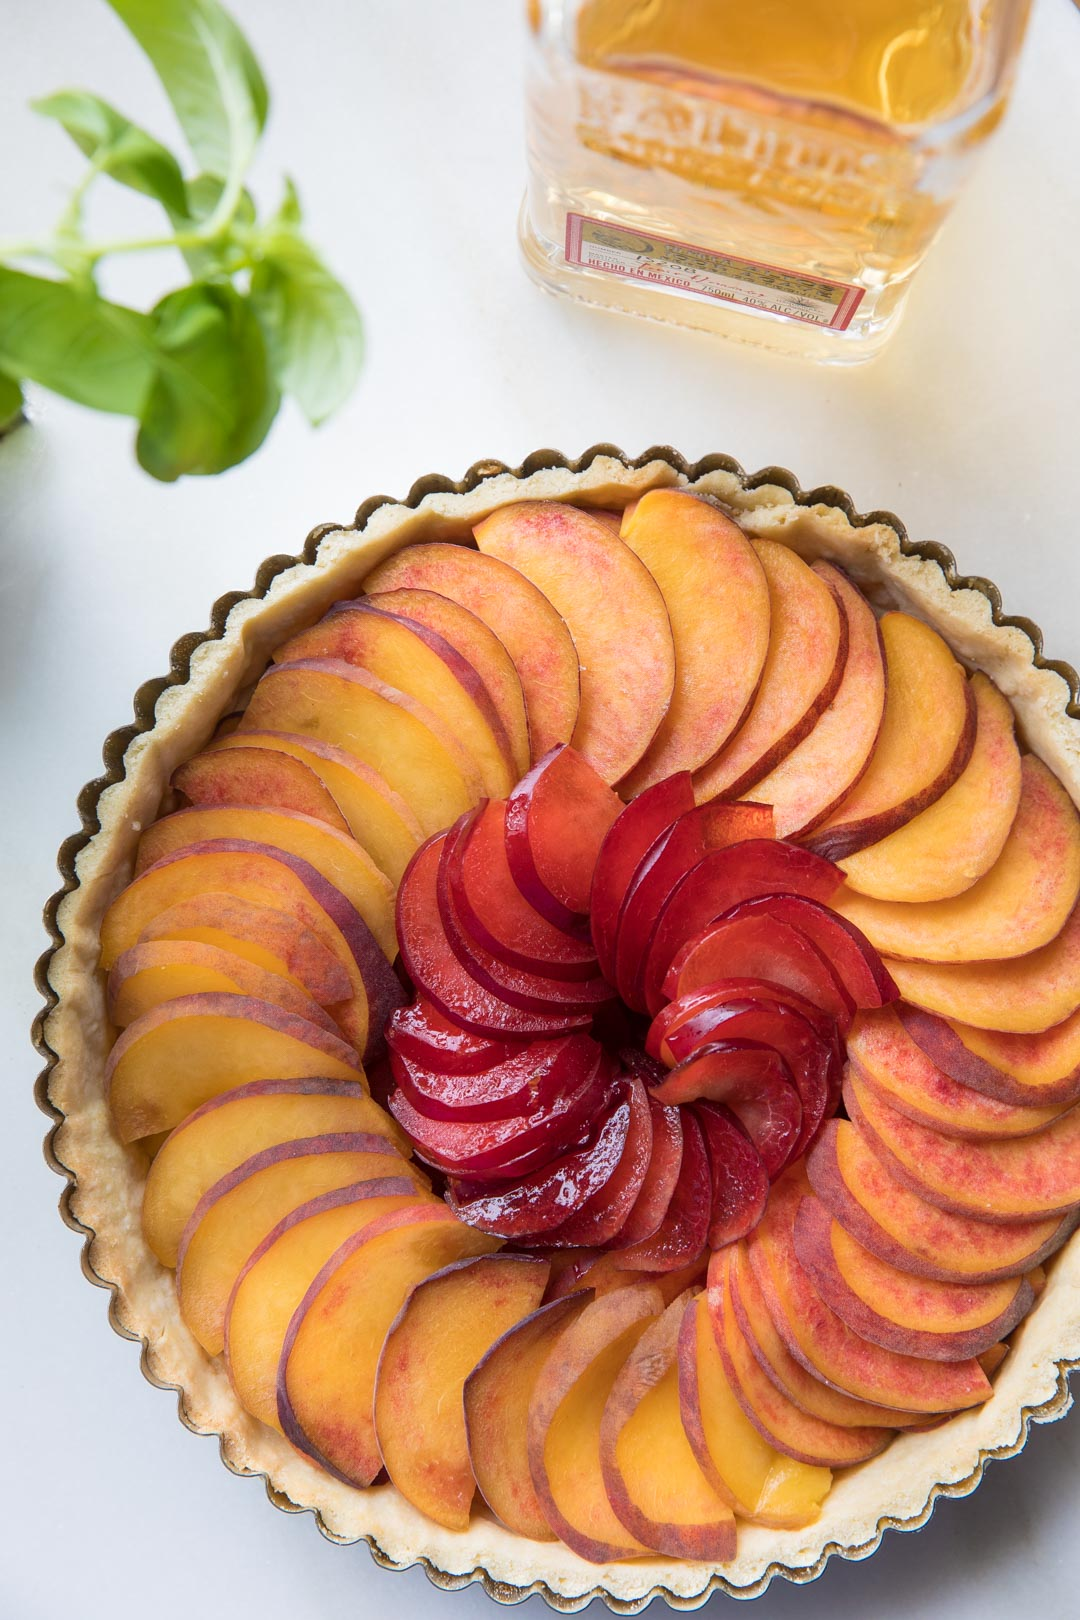 Tequila Glazed Peach Tart from Southern Fatty